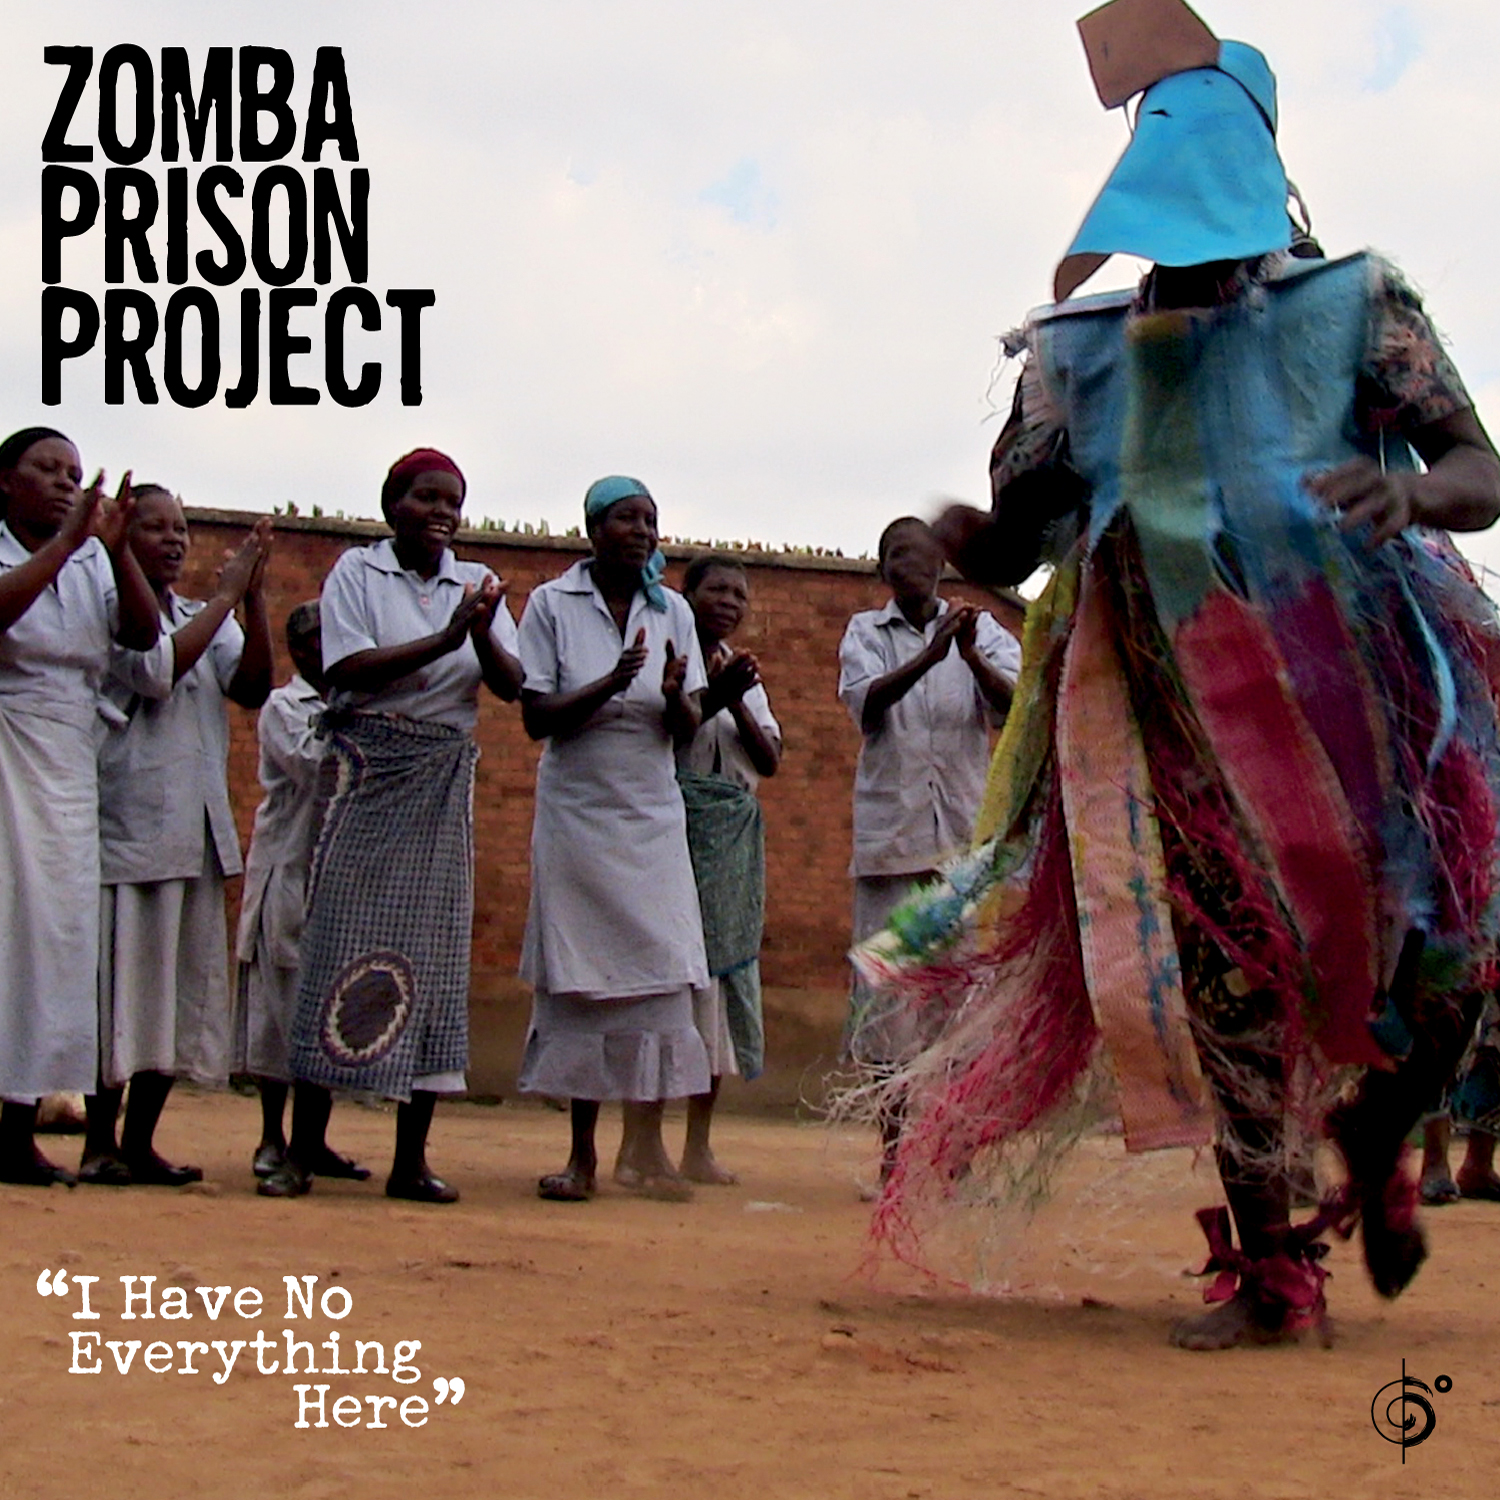 Grammy Nomination for Best World Music Album – Zomba Prison Project